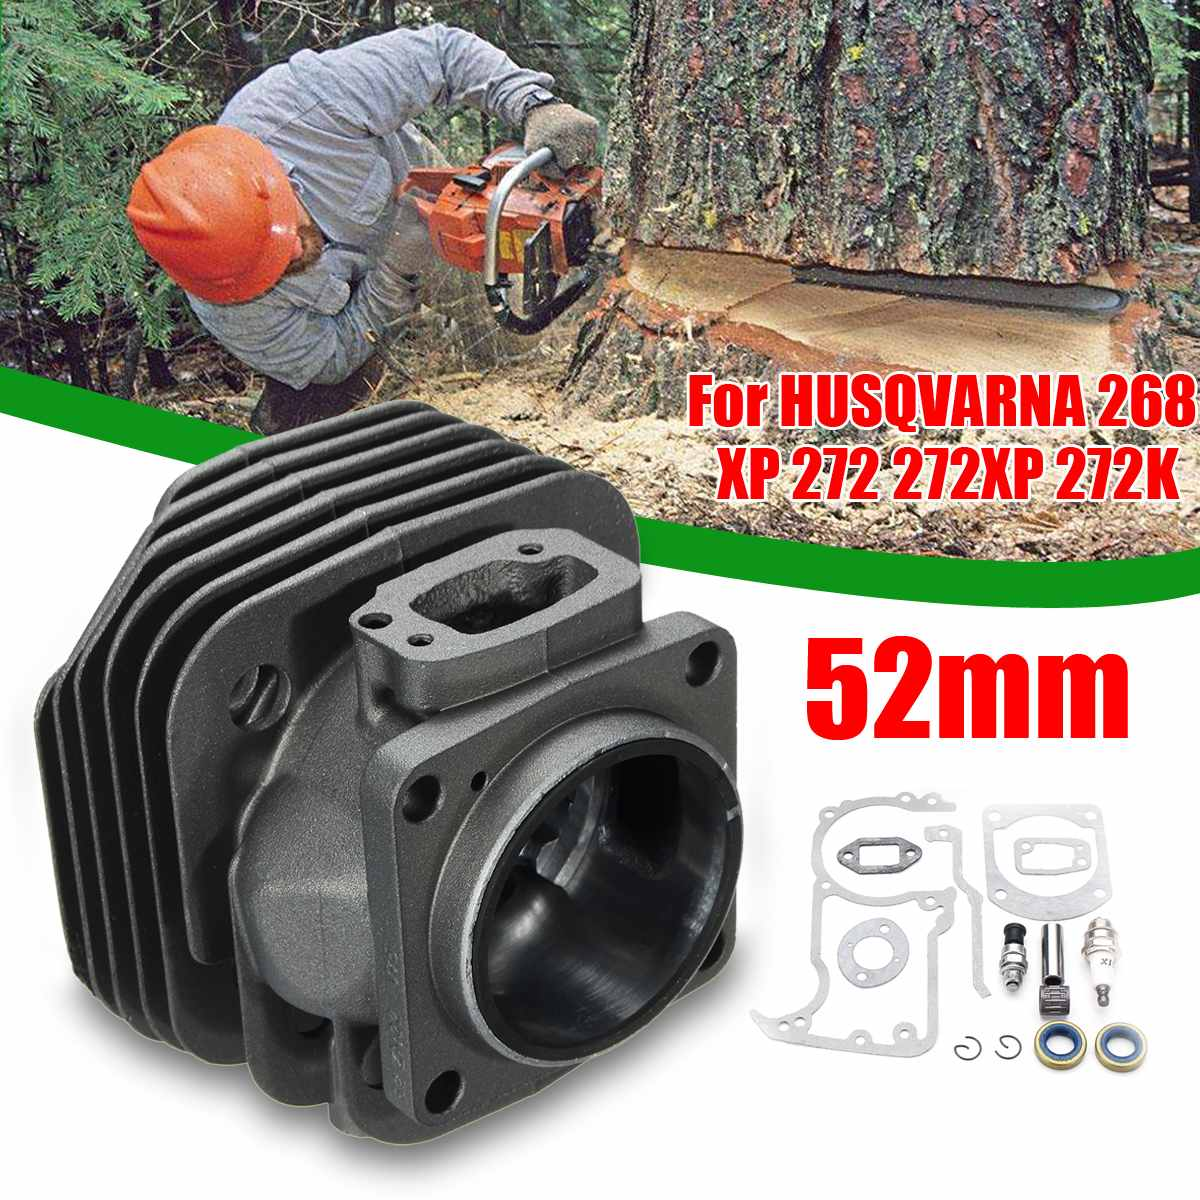 52mm Air Cylinder Head Piston Sleeve Kit For HUSQVARNA 268XP 272 272XP 272K Chainsaw Chain Saws Parts Dropshipping